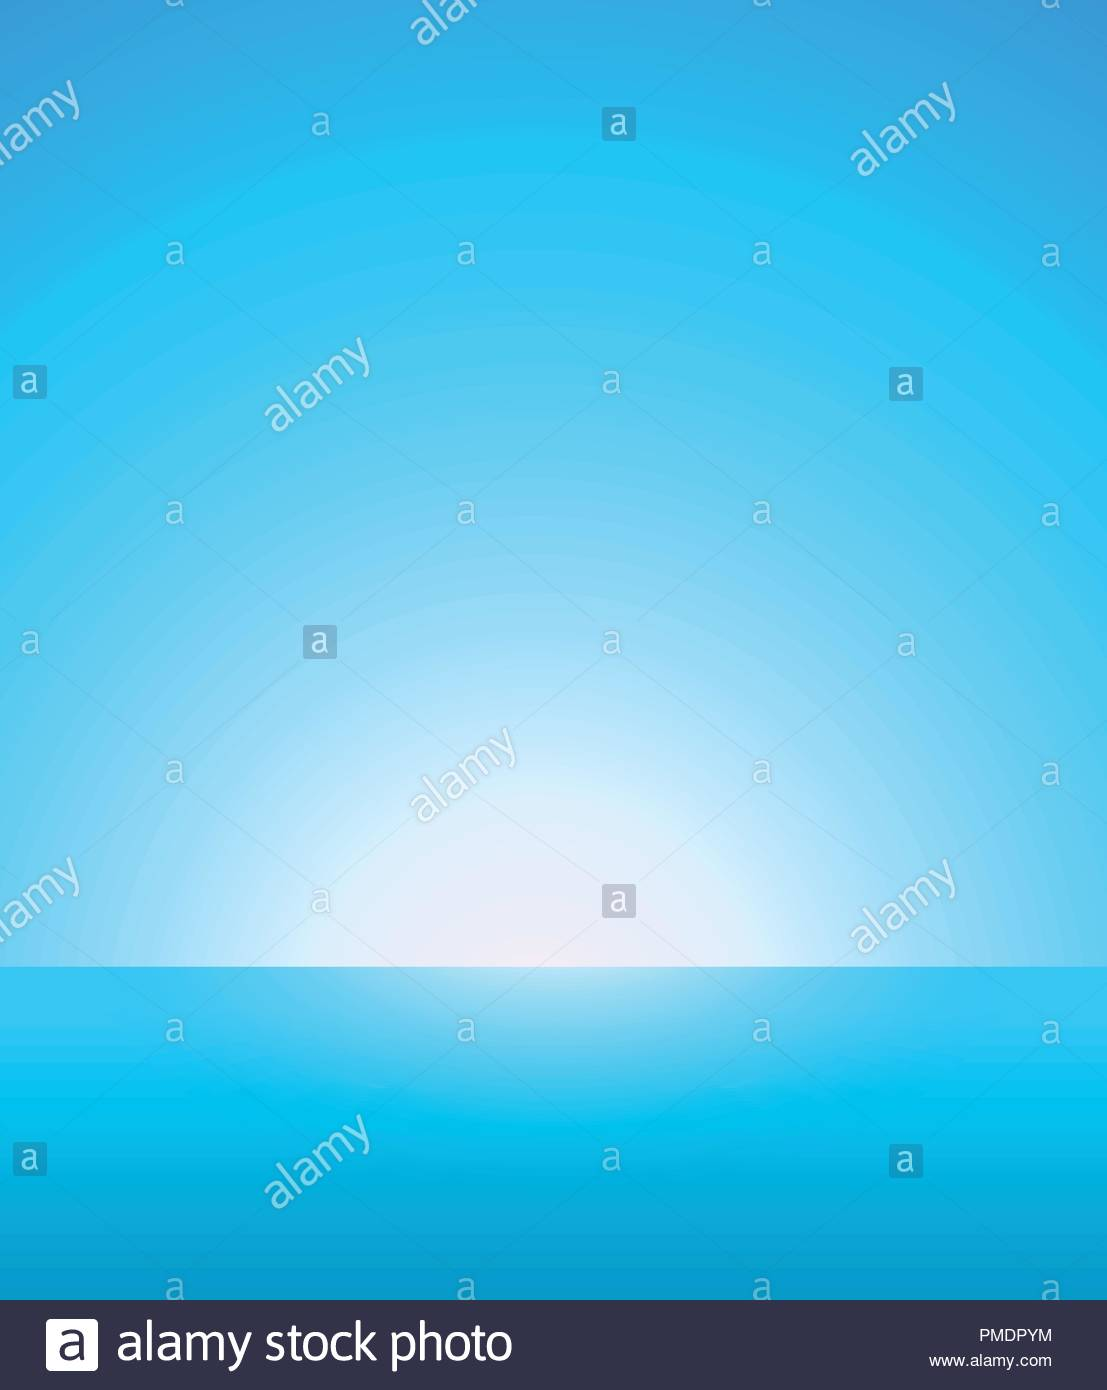 Abstract Vector Background of Nautical Marine Landscape with Blue 1107x1390